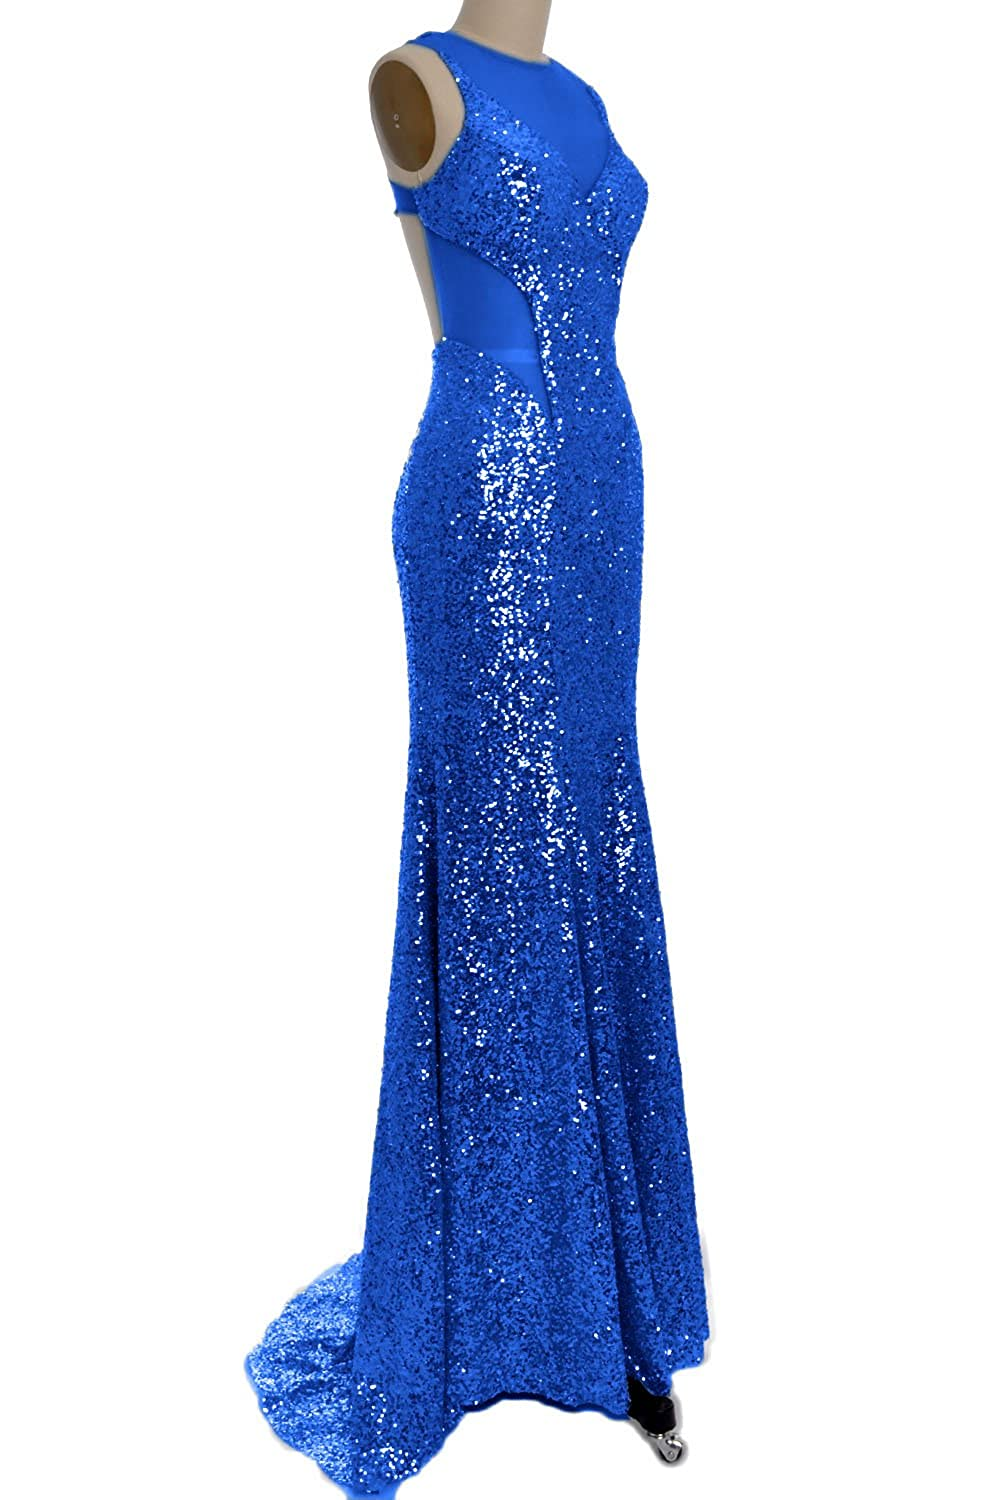 4450467fcaed Quality Made-To-Order Dresses. Please have your measurements taken first by  a professional tailor or measure yourself by following the measure guide  (see ...